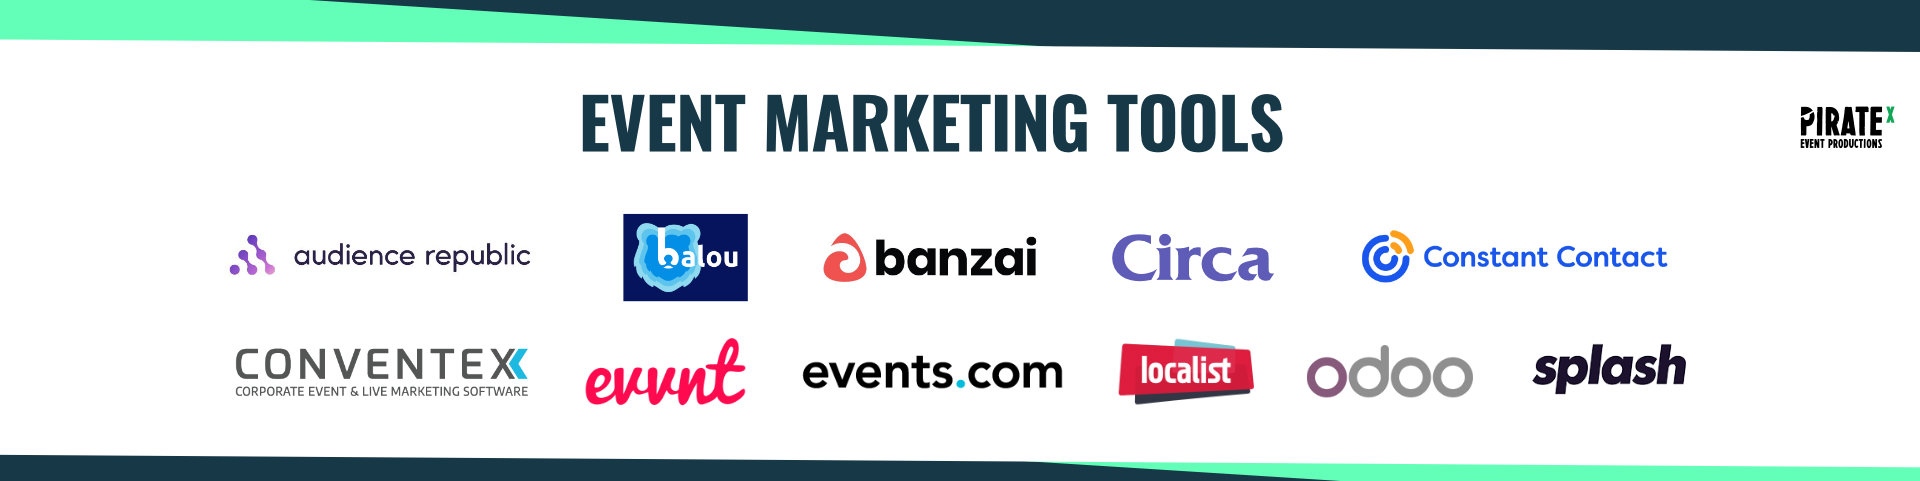 Overview of the Eventtech Landscape April 2021 Update Event Marketing Tools Category